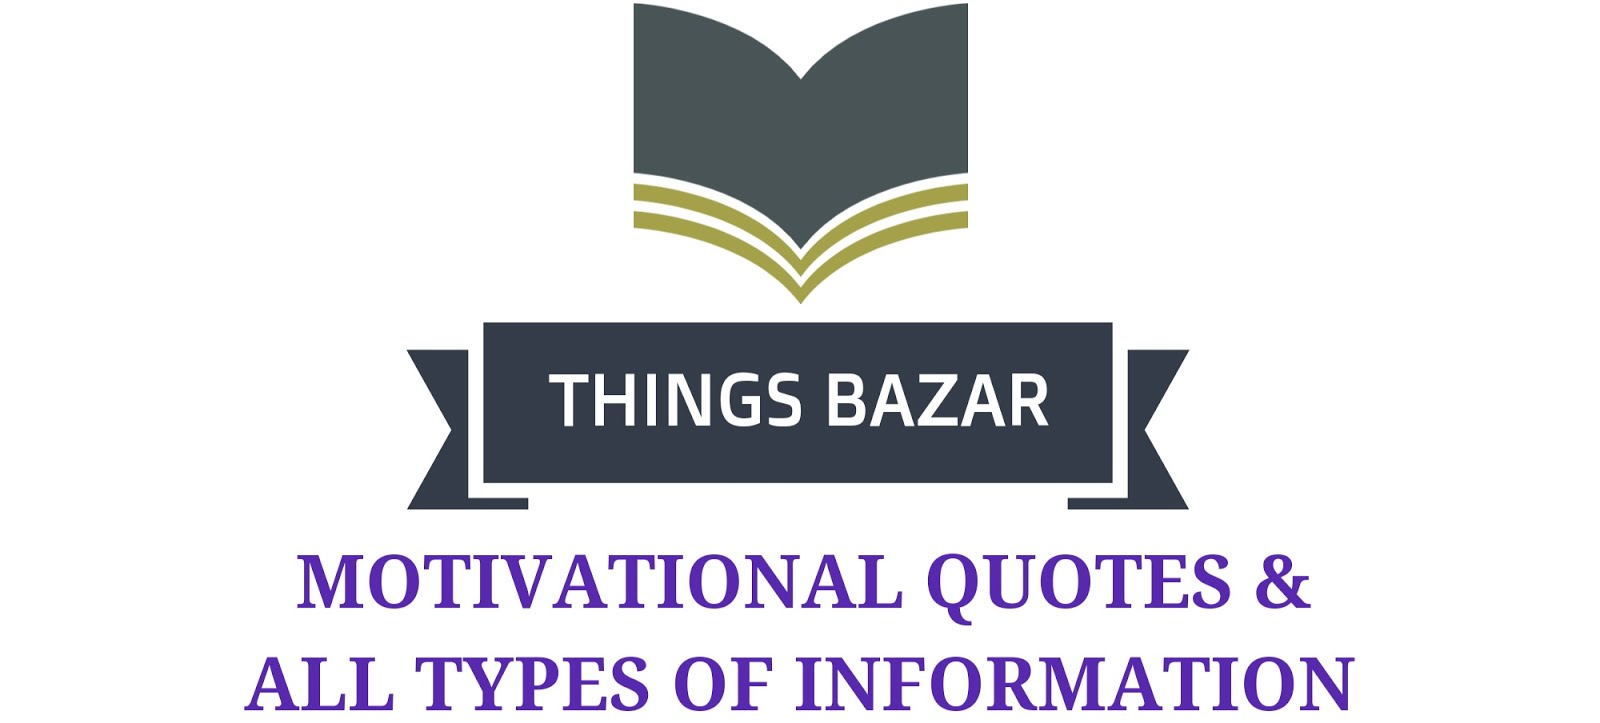 Things Bazar - Health And Technology Tips Or Motivational Platform